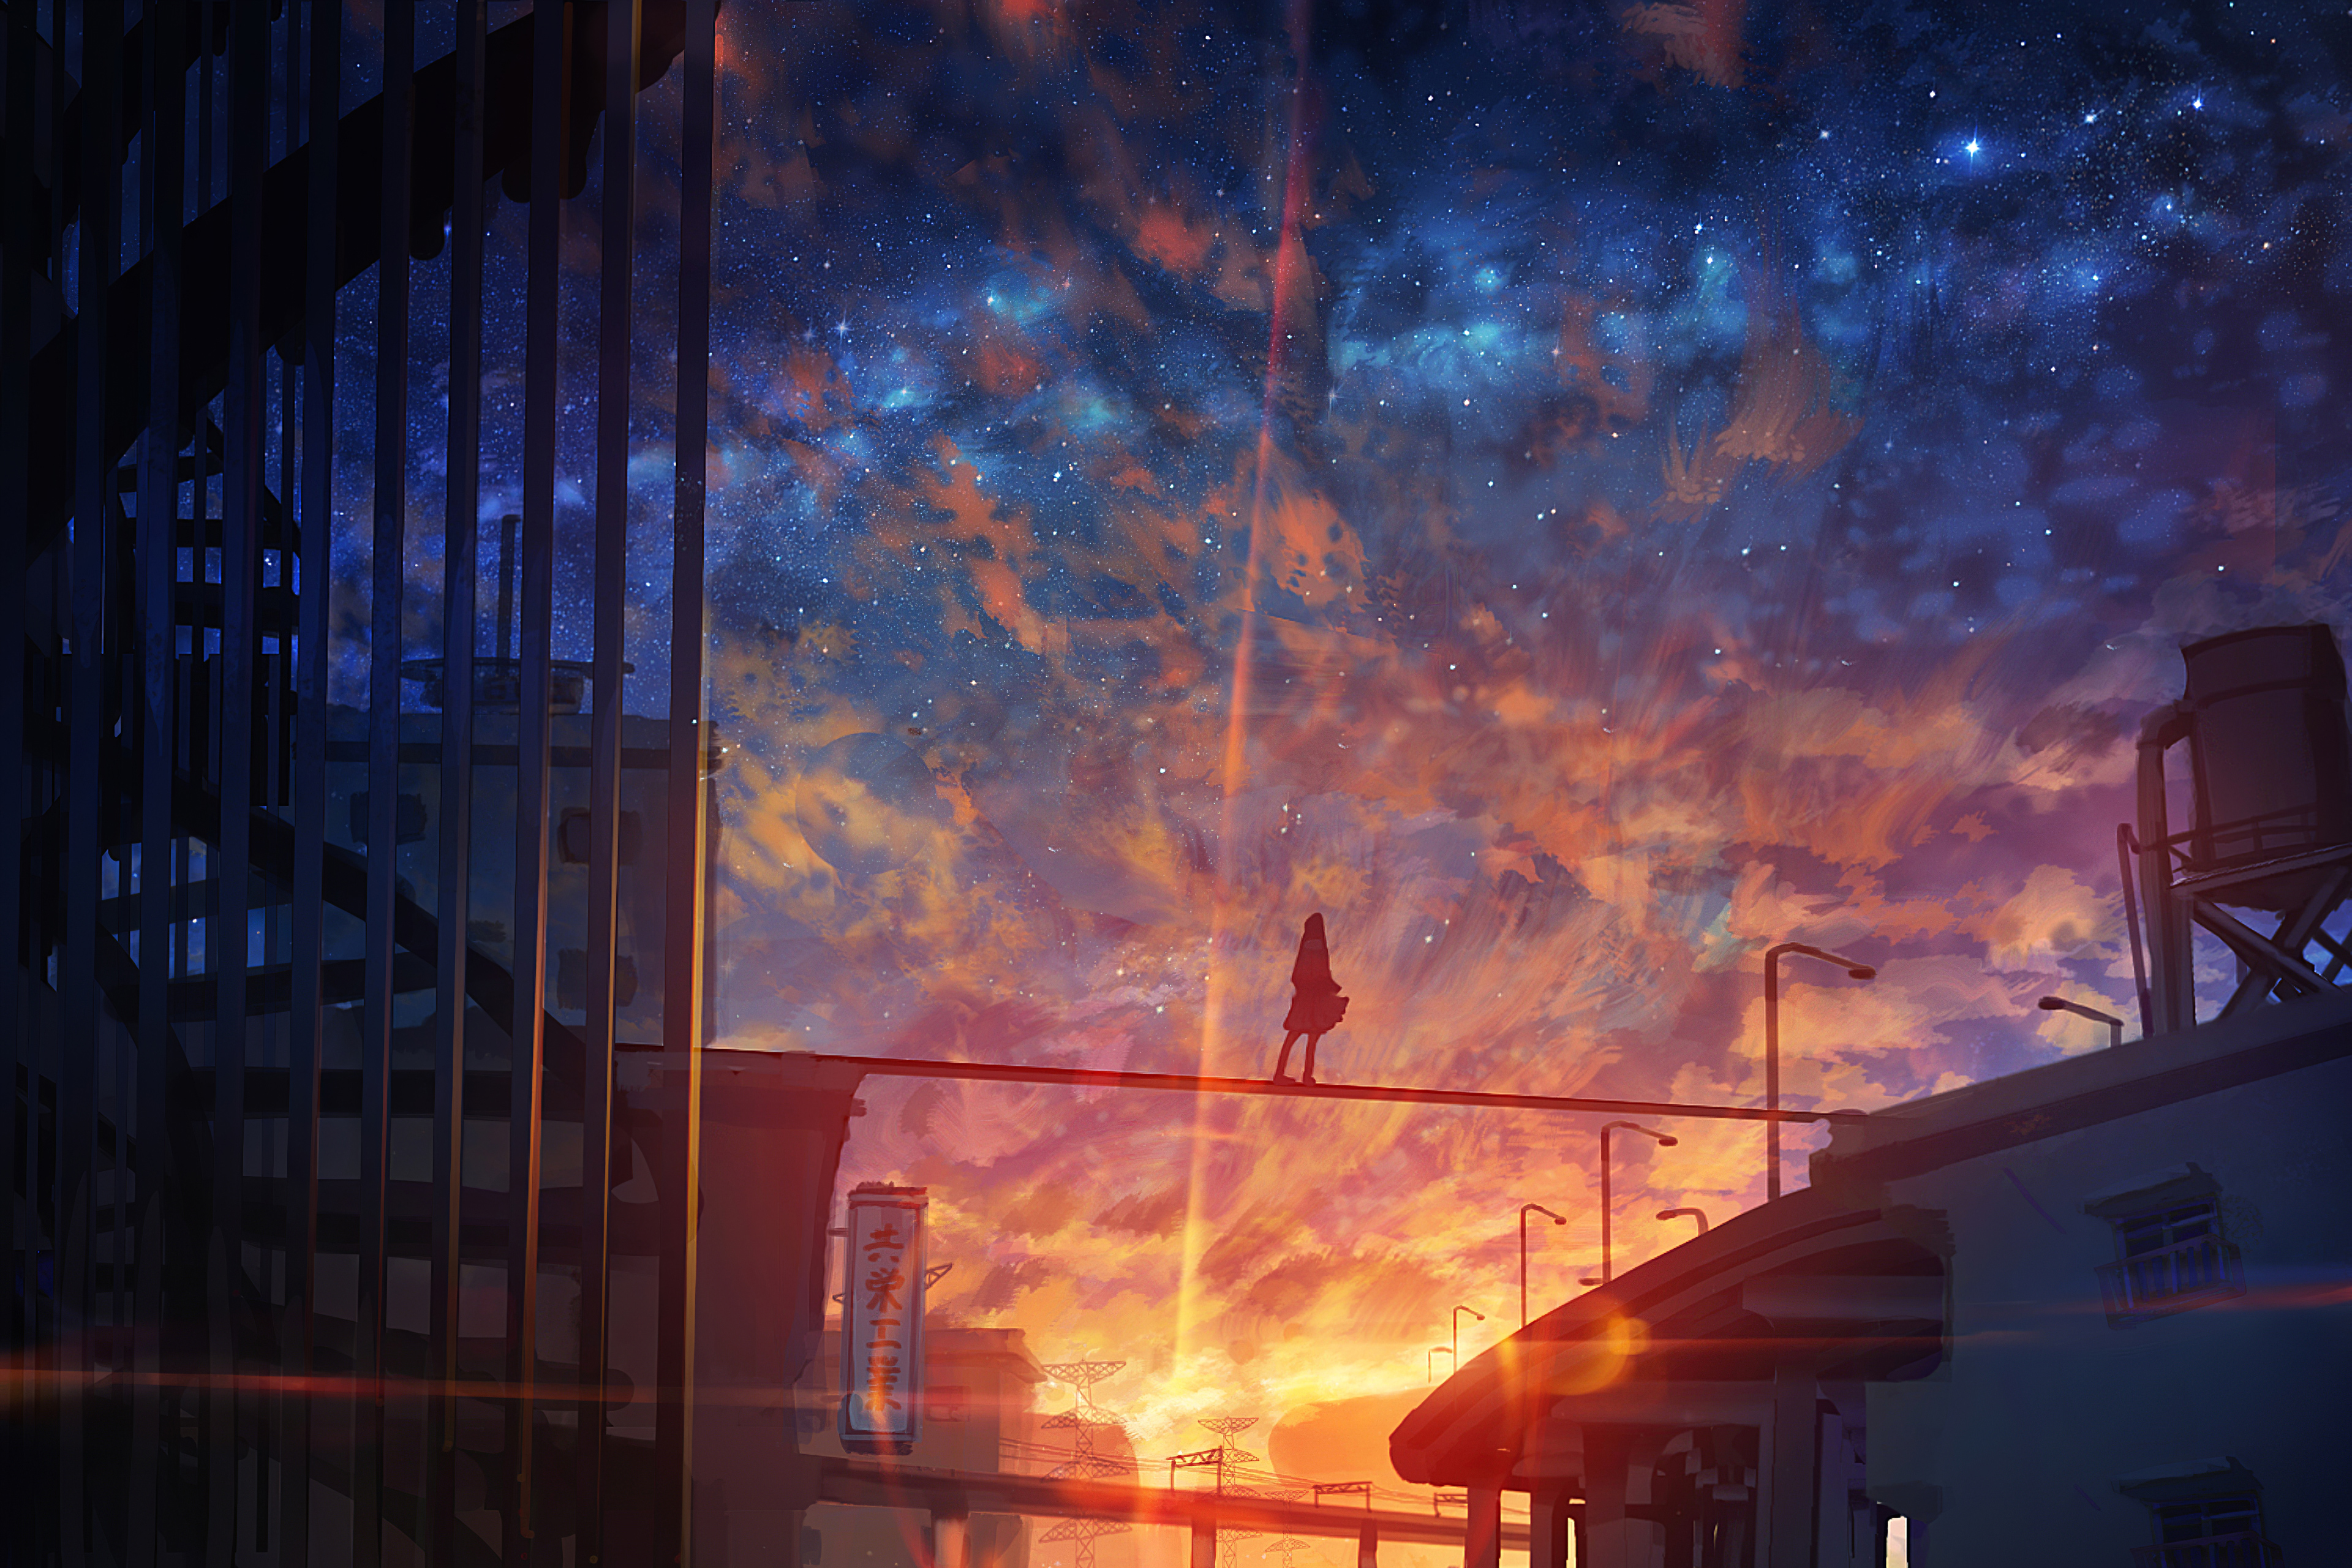 1366x768 Starry Sky Anime Girl 4k 1366x768 Resolution Hd 4k Wallpapers Images Backgrounds Photos And Pictures